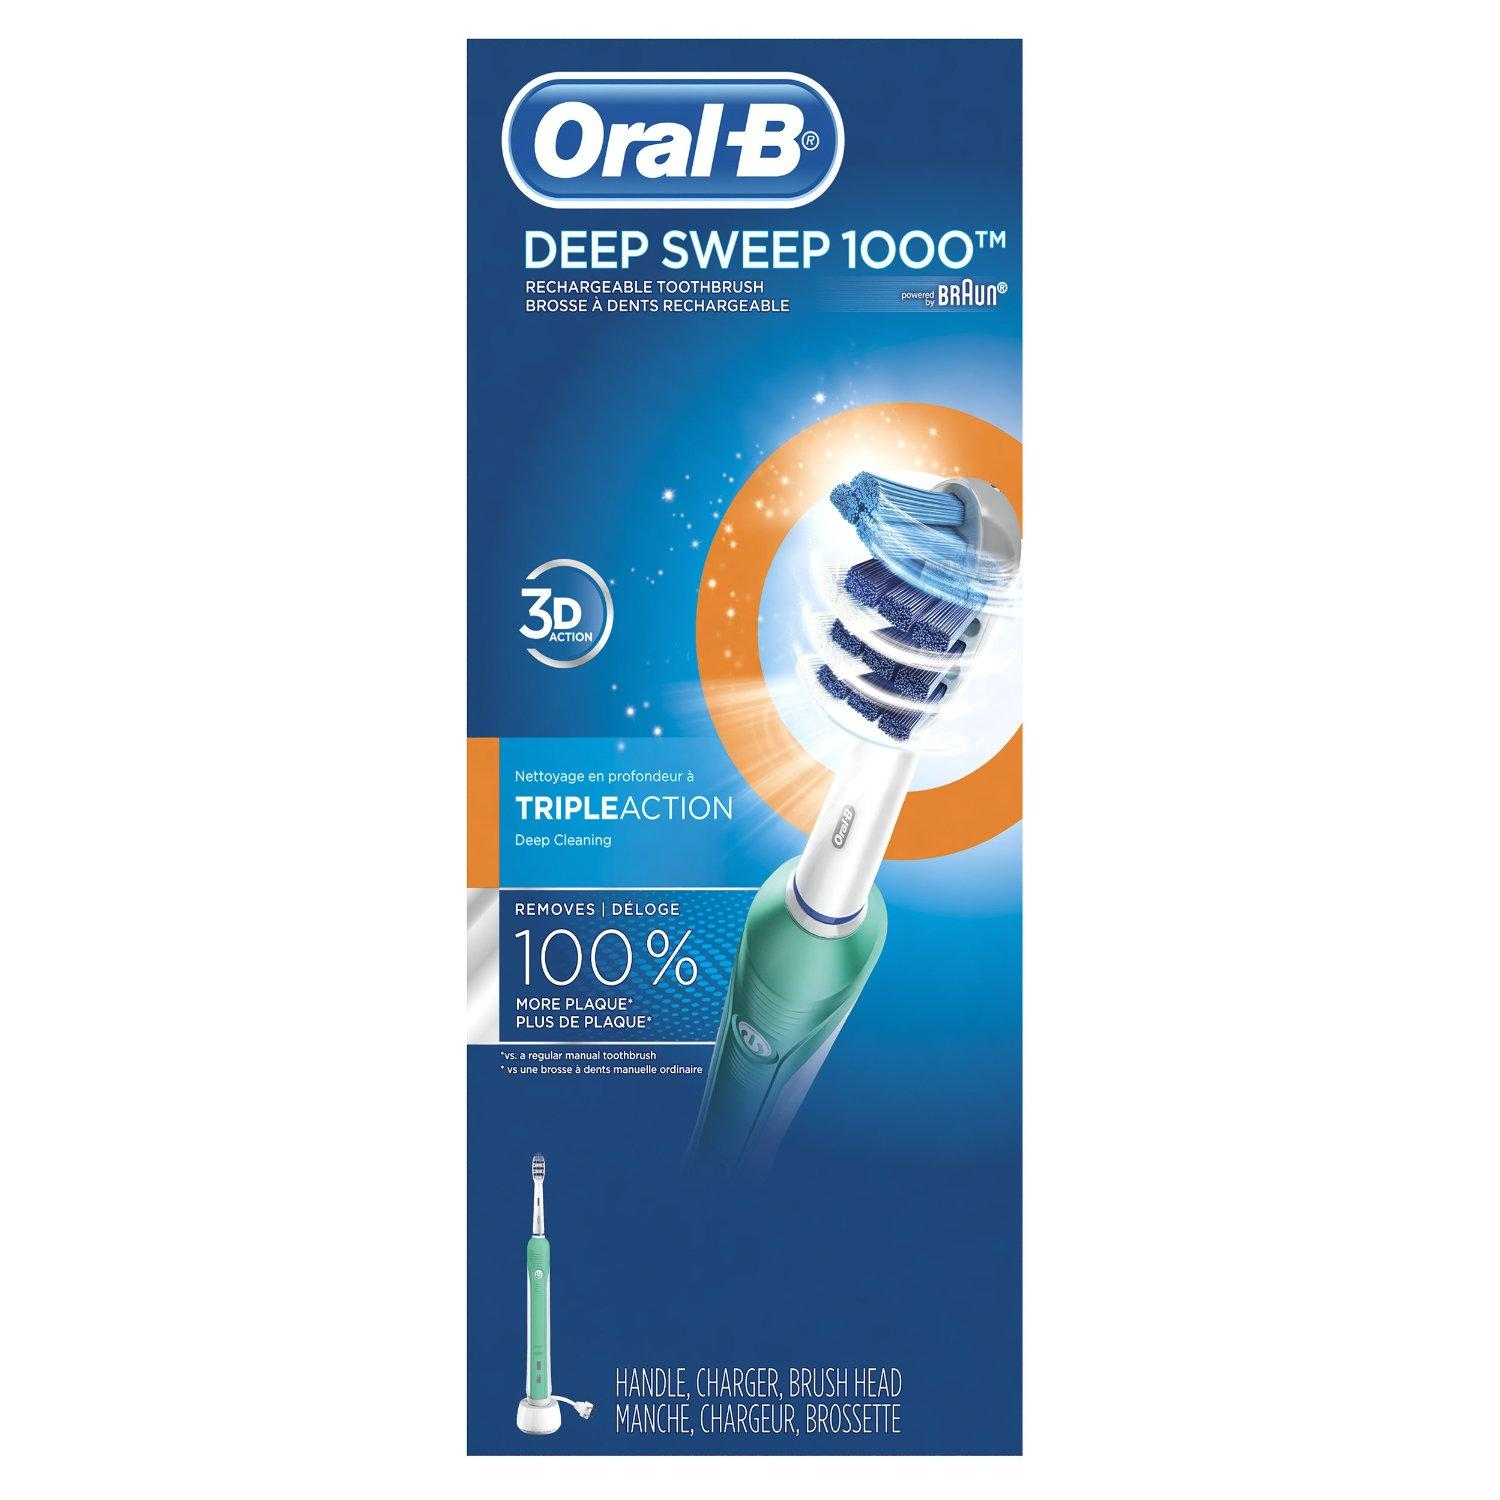 Oral-B Deep Sweep 1000 Electric Rechargeable Power Toothbrush Powered by Braun